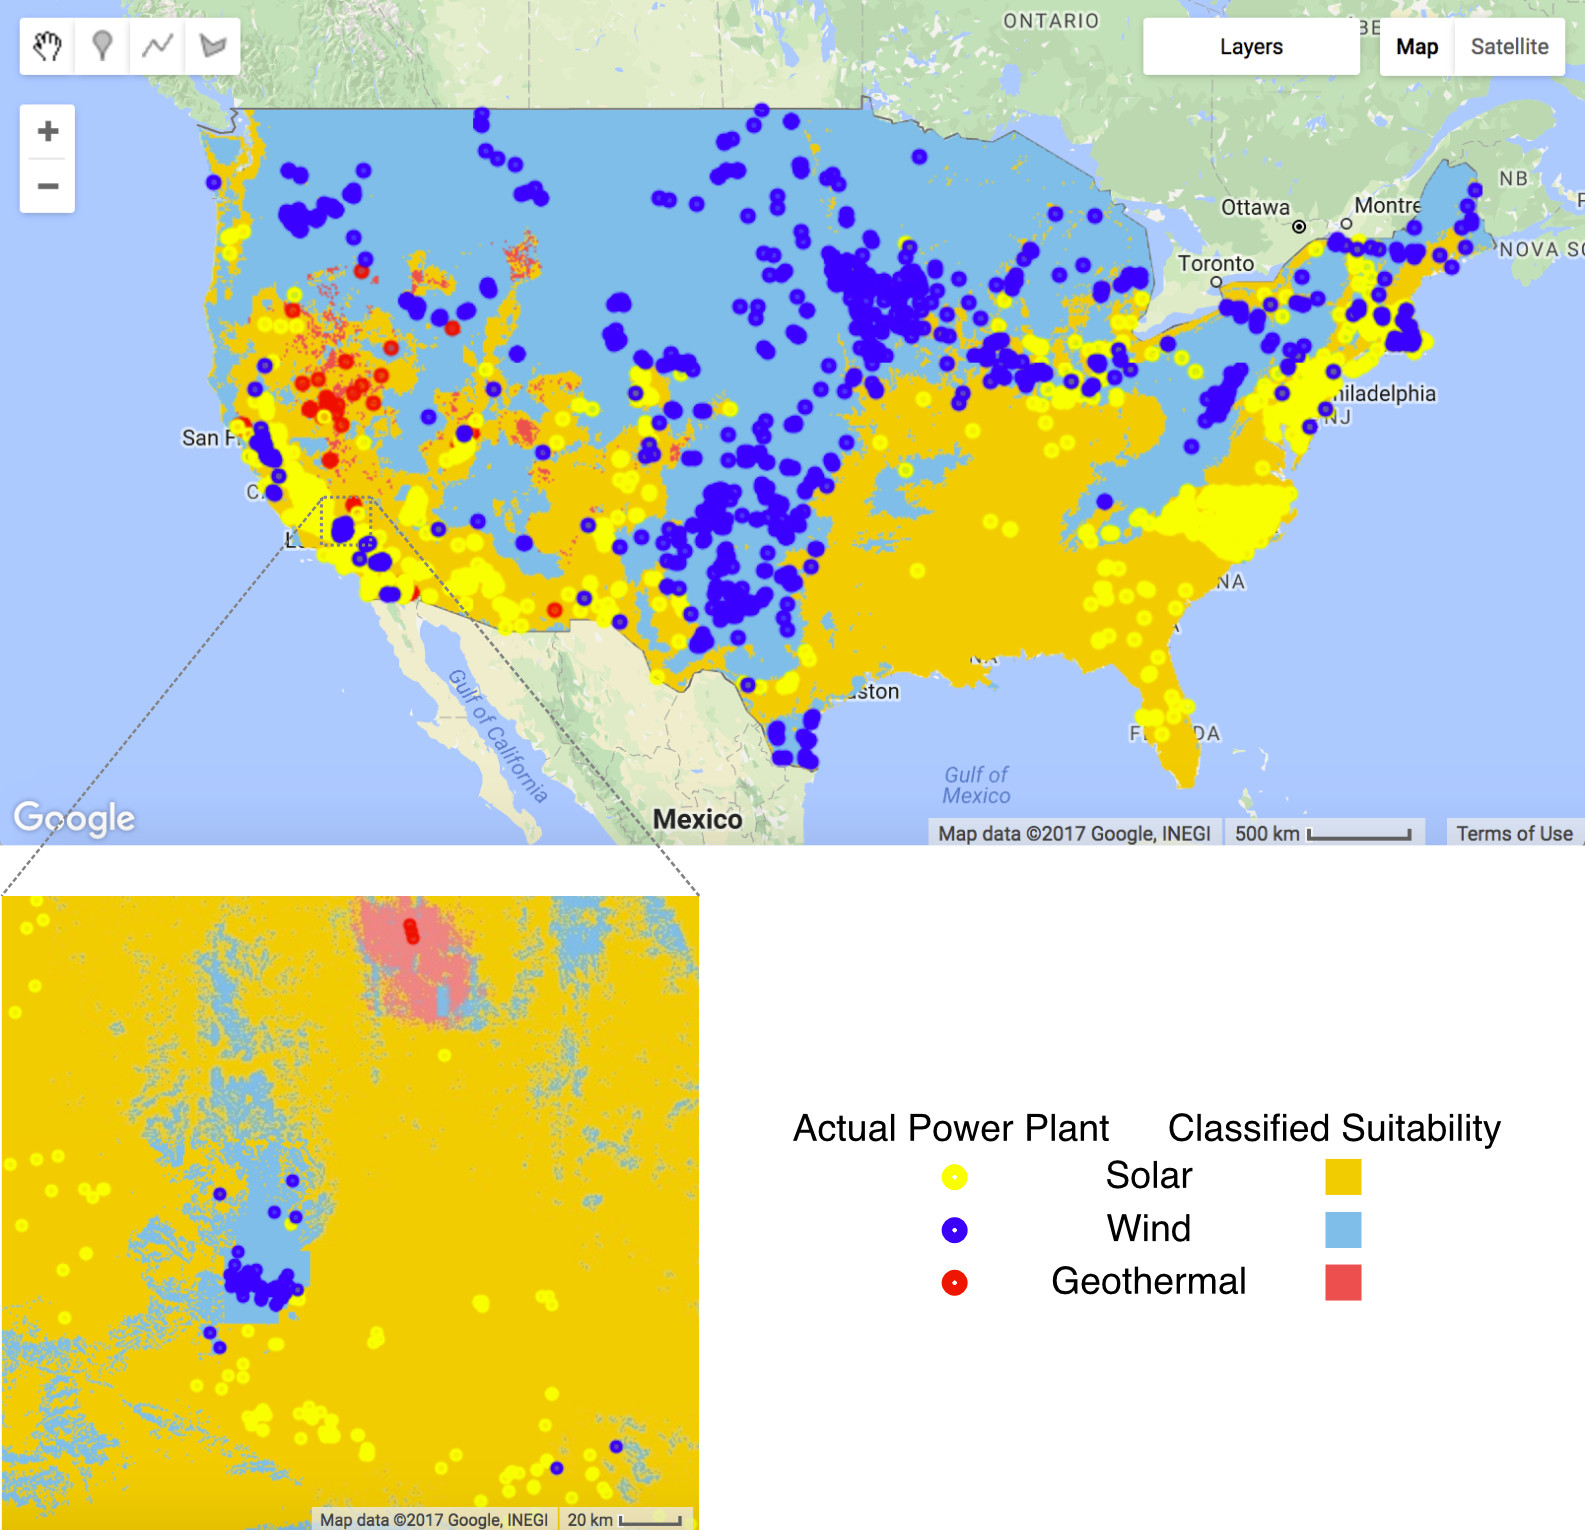 Map of the USA classified by suitability for wind, solar or geothermal energy.